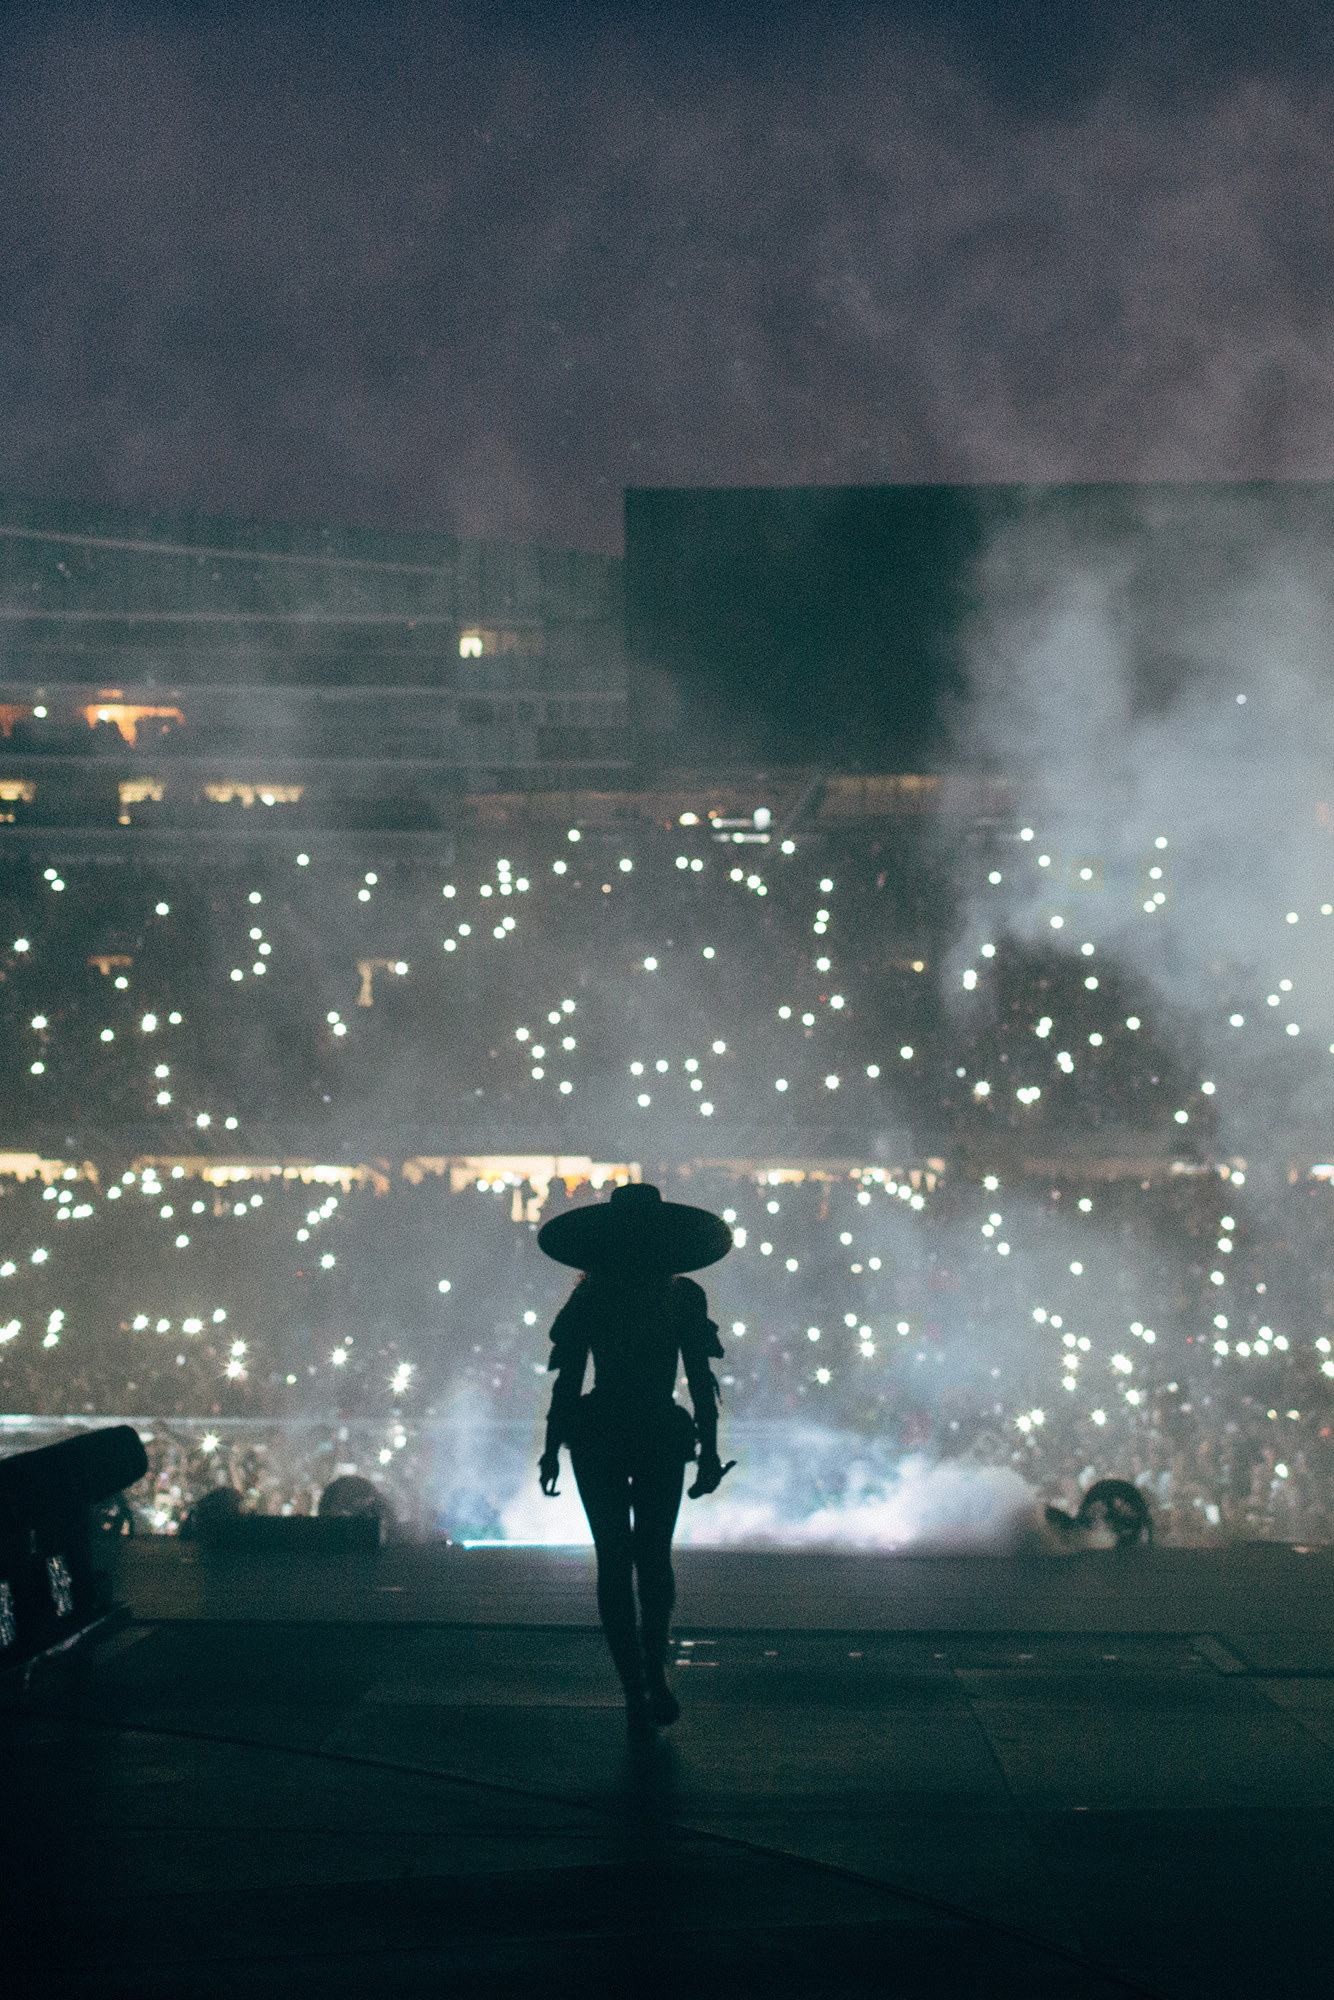 Beyoncé takes the stage during her Formation World Tour in Chicago on May 27, 2016.